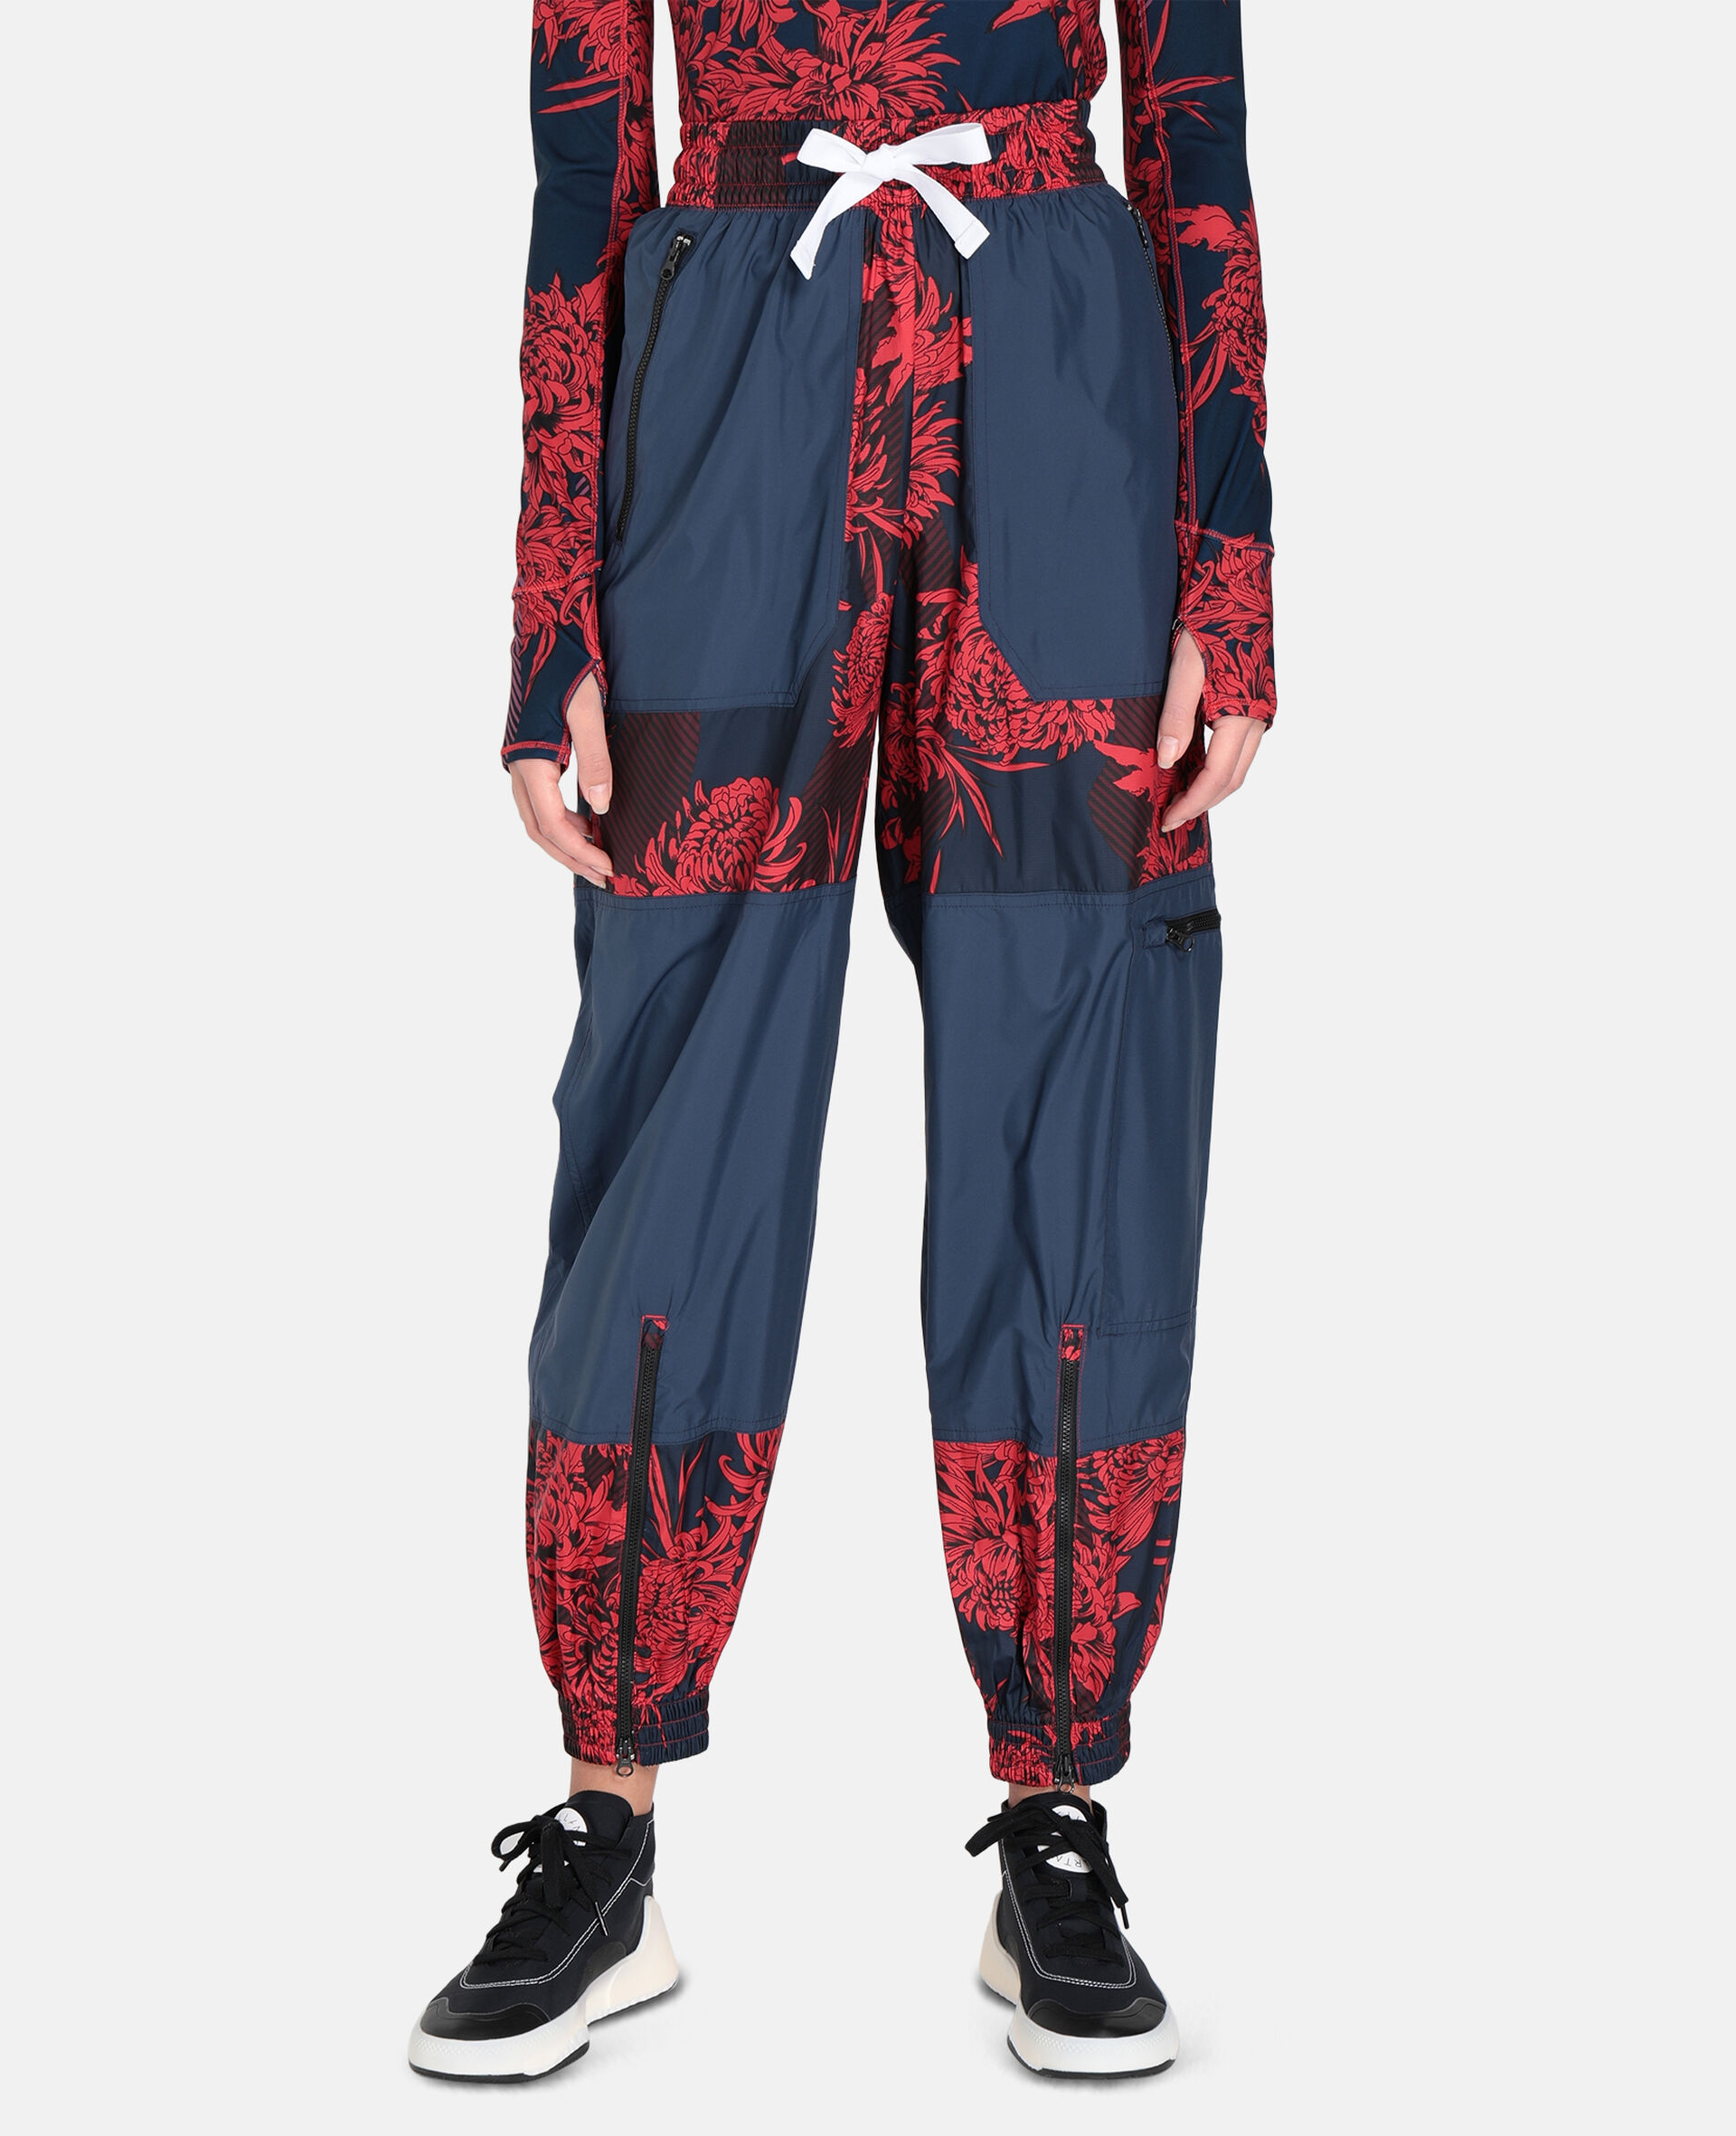 Future Playground Woven Training Pants-Red-large image number 4